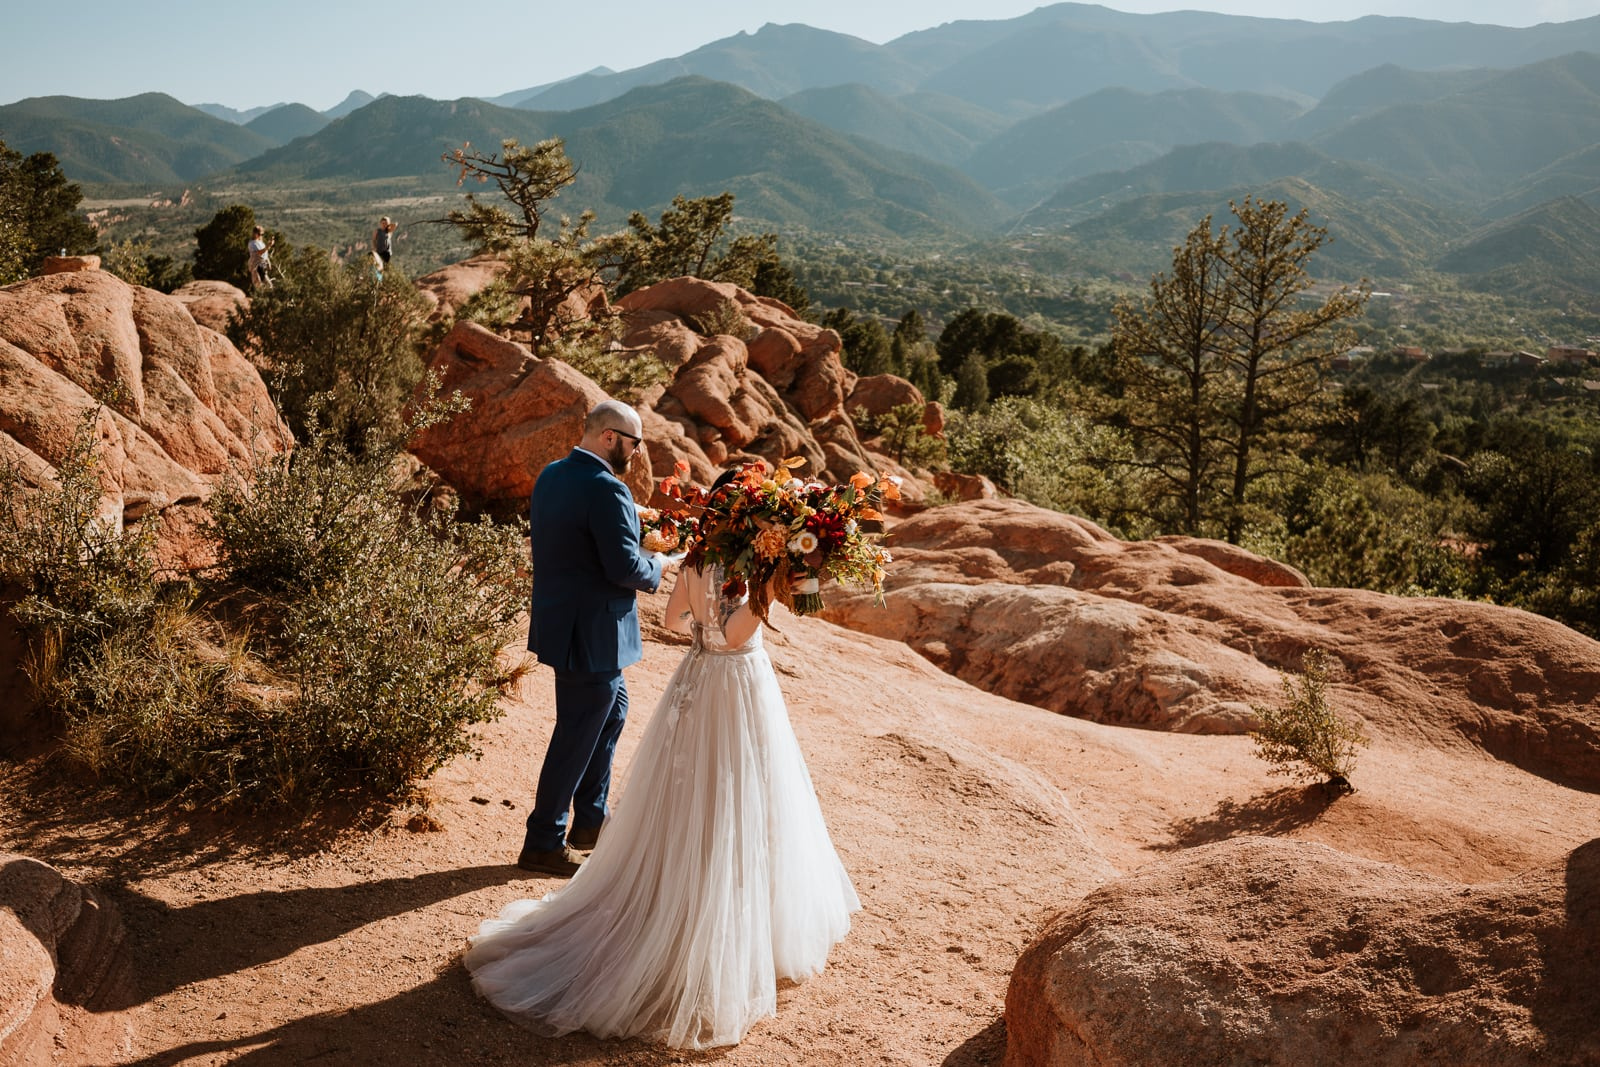 Bride and groom walking to their elopement ceremony location at High Point in Garden of the Gods Colorado